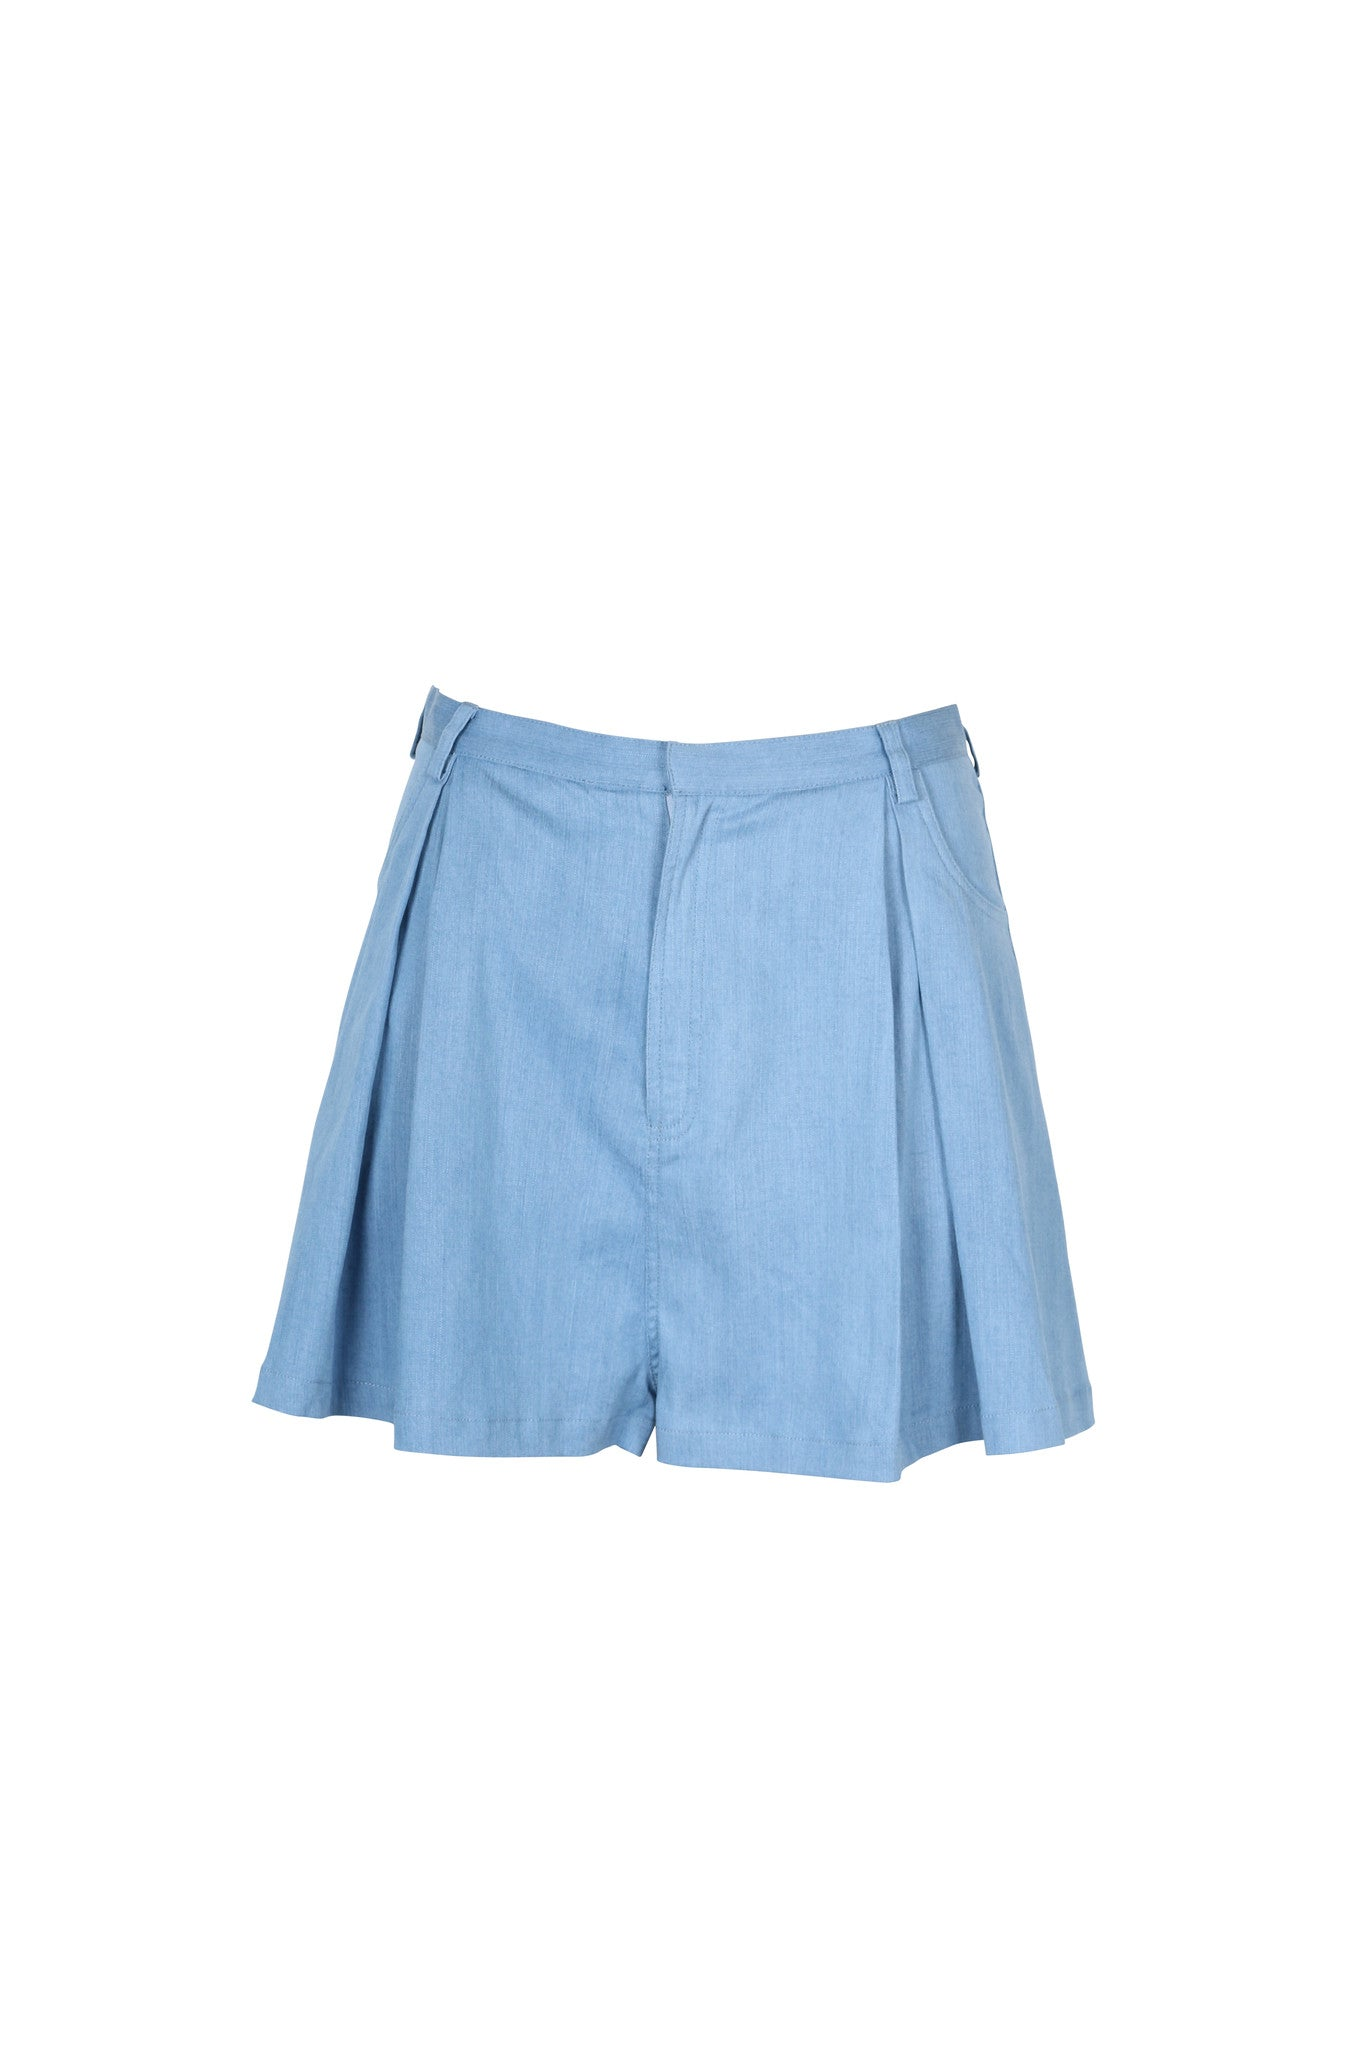 Chambray High Waisted Shorts